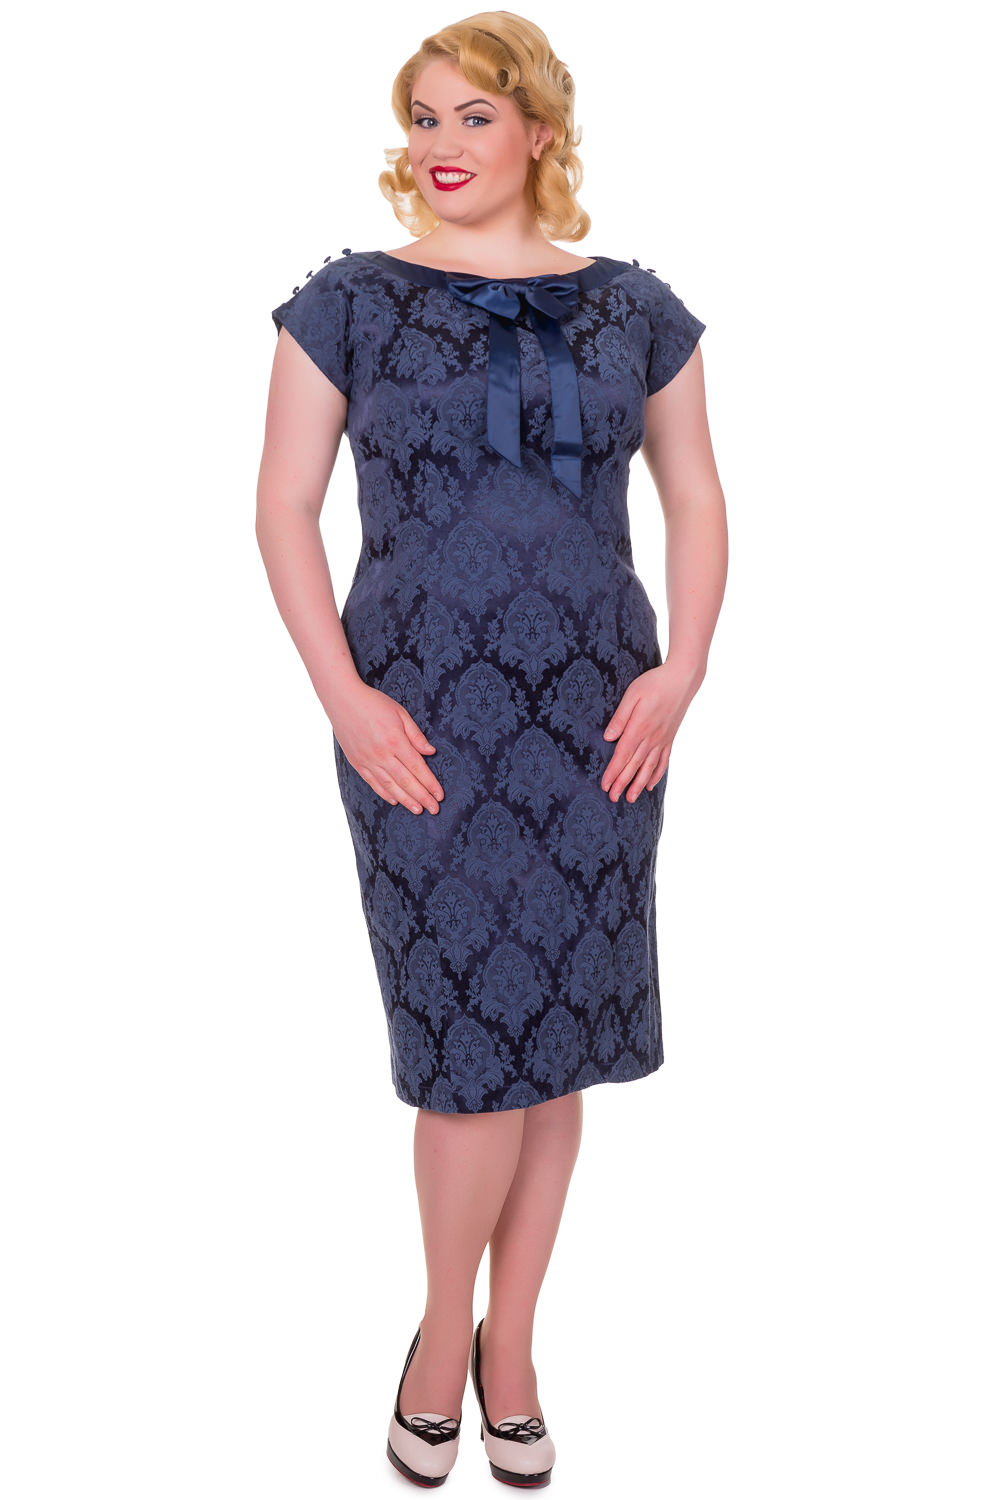 Banned 1940s Plus Size Limitless Dress